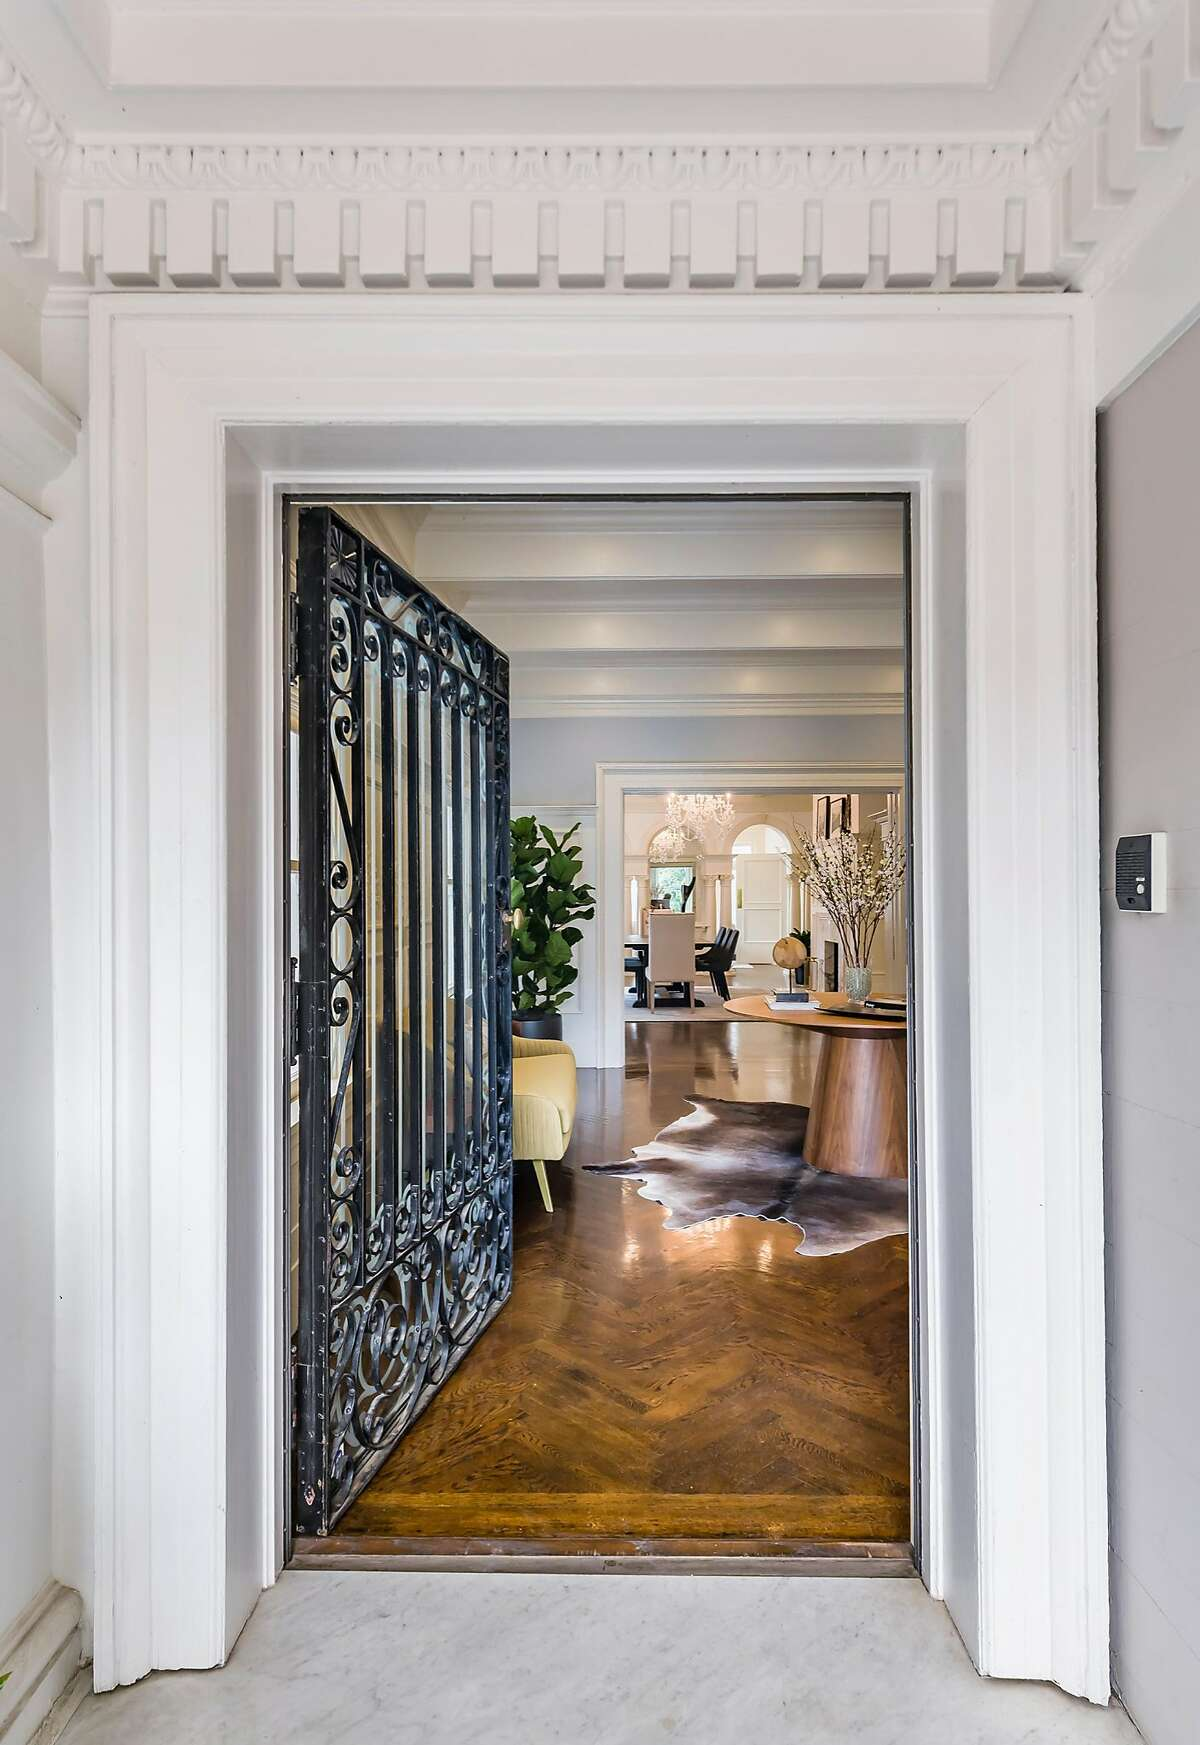 The home opens through a portico to a handsome foyer.